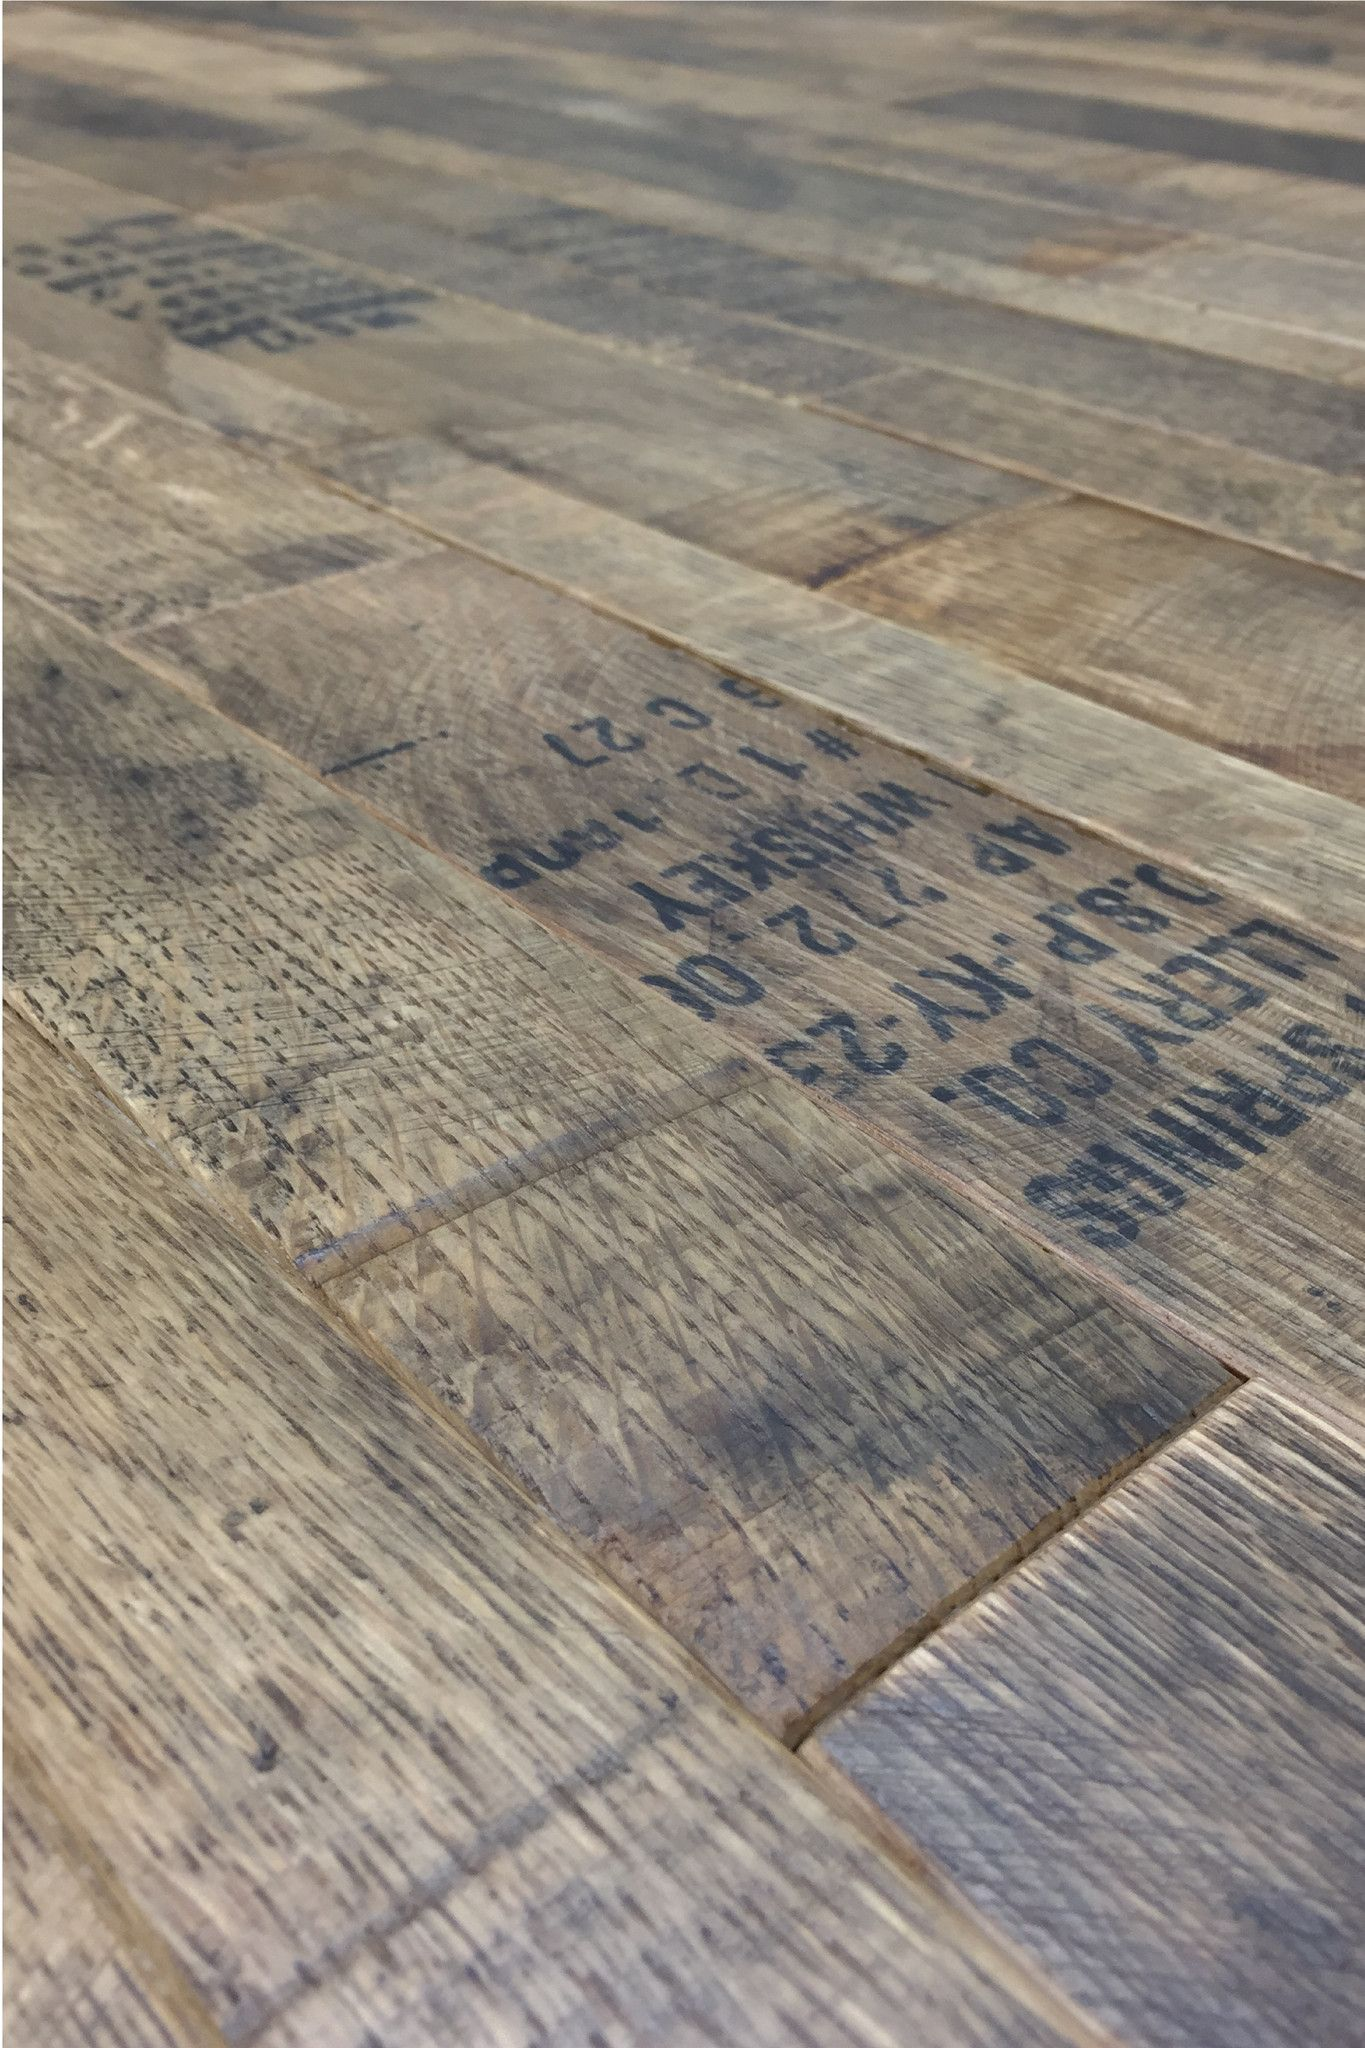 12sf Of Reclaimed Whiskey Barrel Oak Cask Coopersmark Flooring For Just 22sf We Meticulously Handcraft These Barrels Into Striking Surfaces